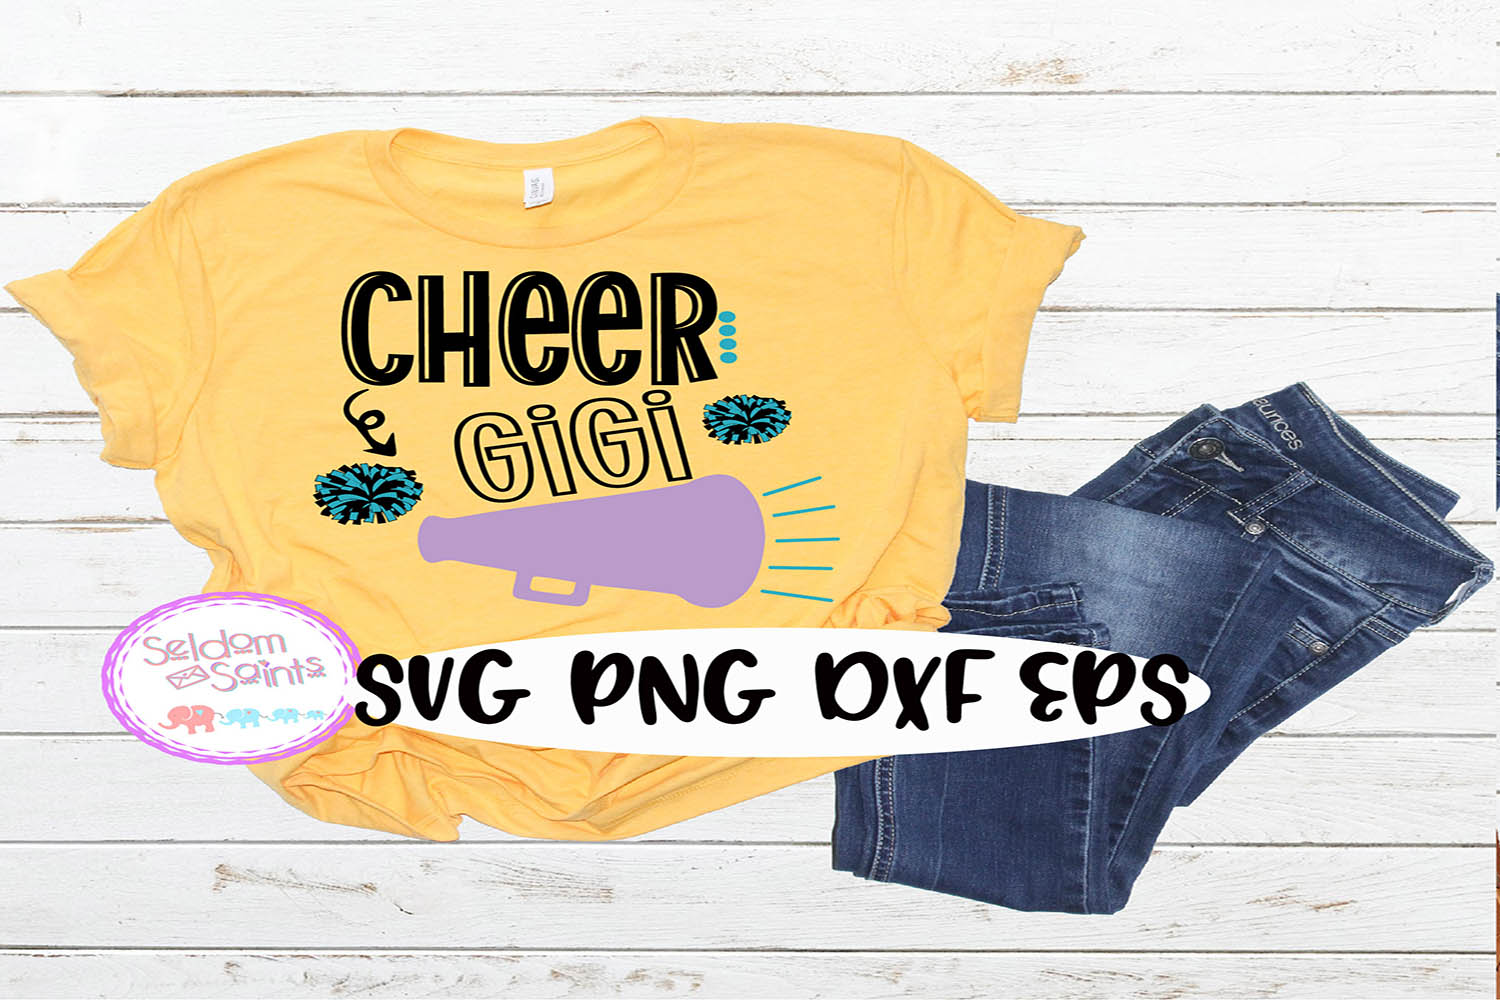 Cheer Gigi SVG PNG DXF EPS example image 1